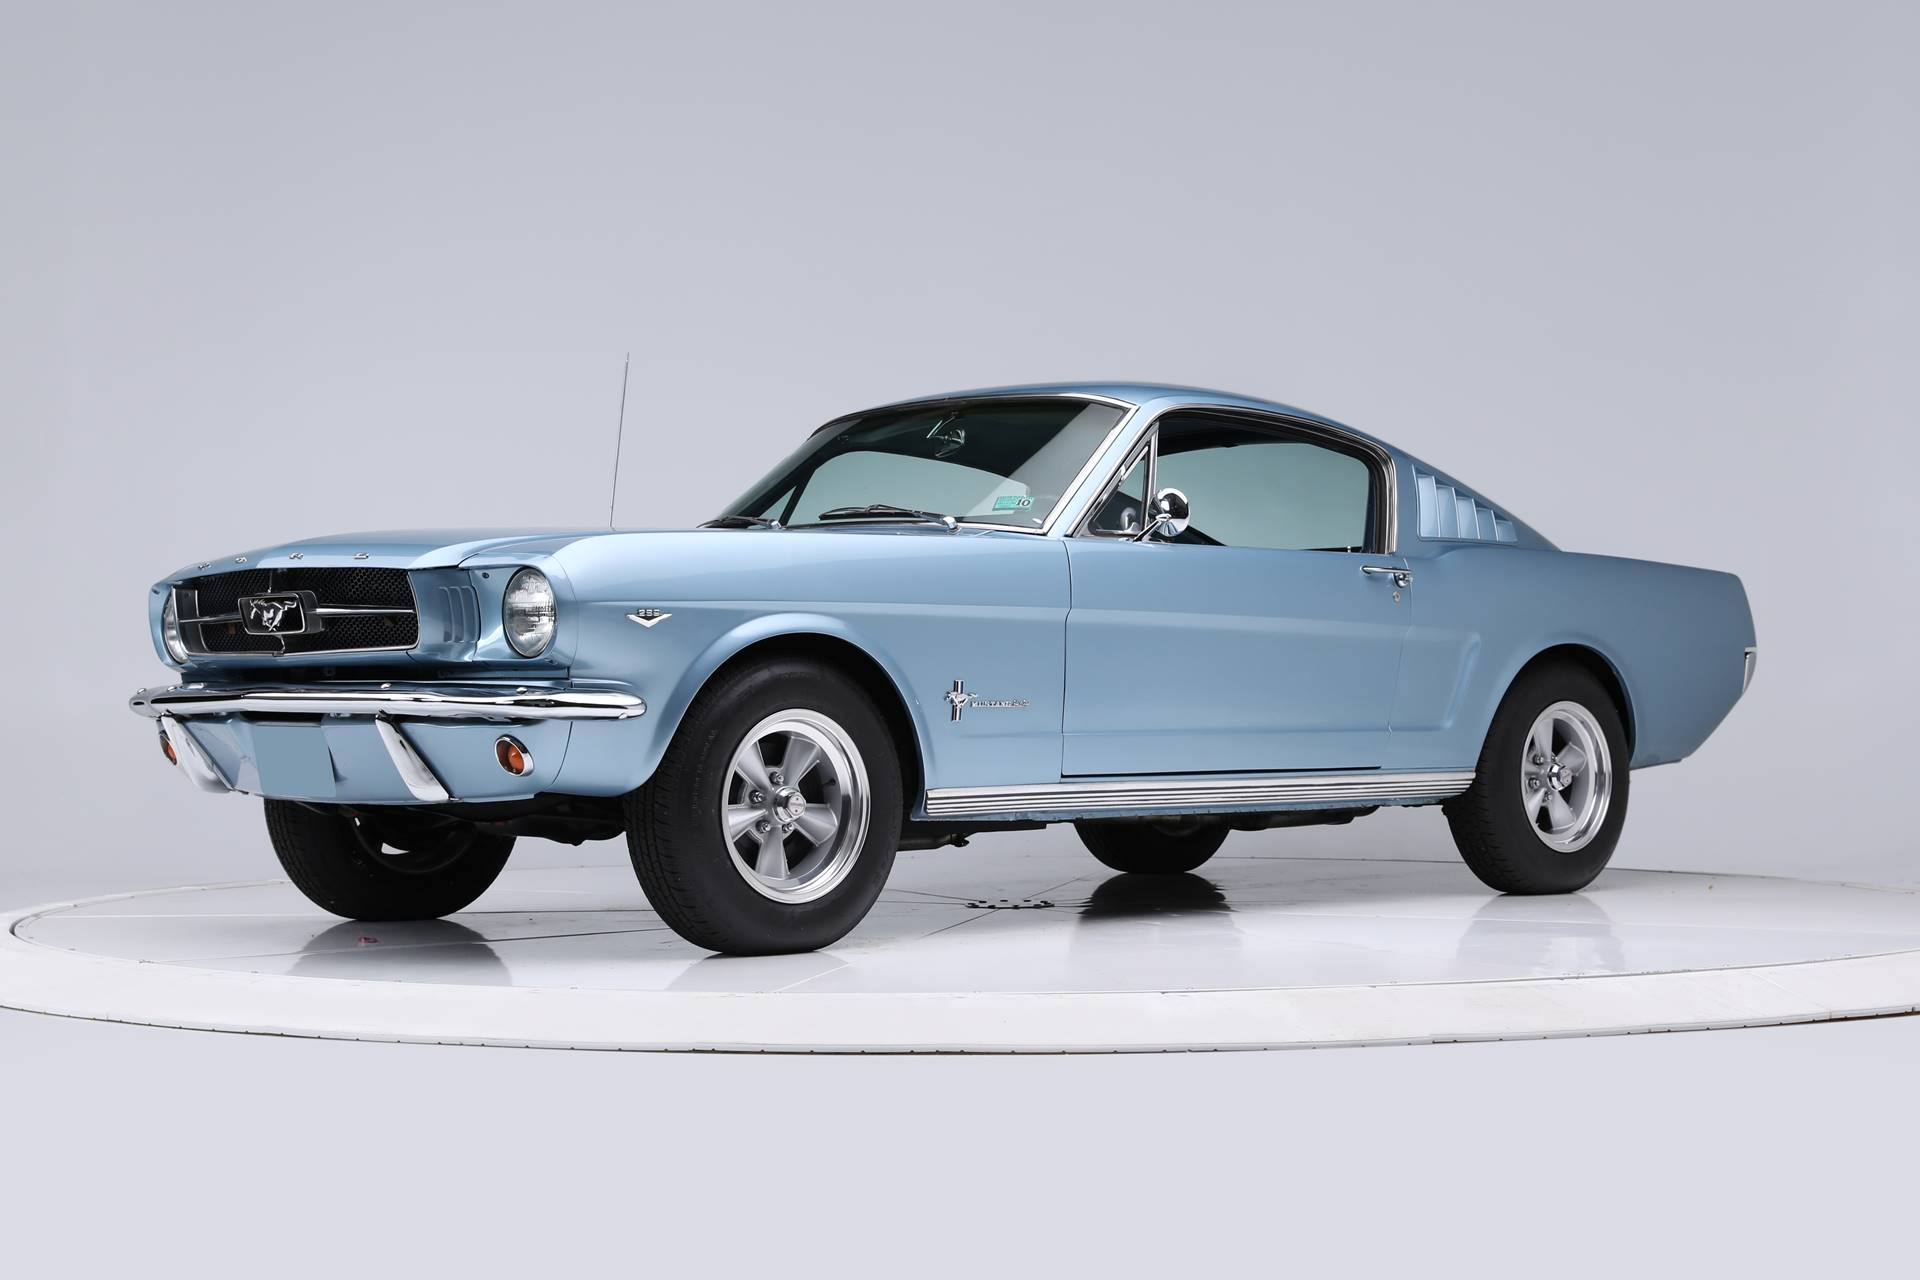 Barrett-Jackson Northeast Auction To Offer Incredible Mix Of Classic Ford Mustangs